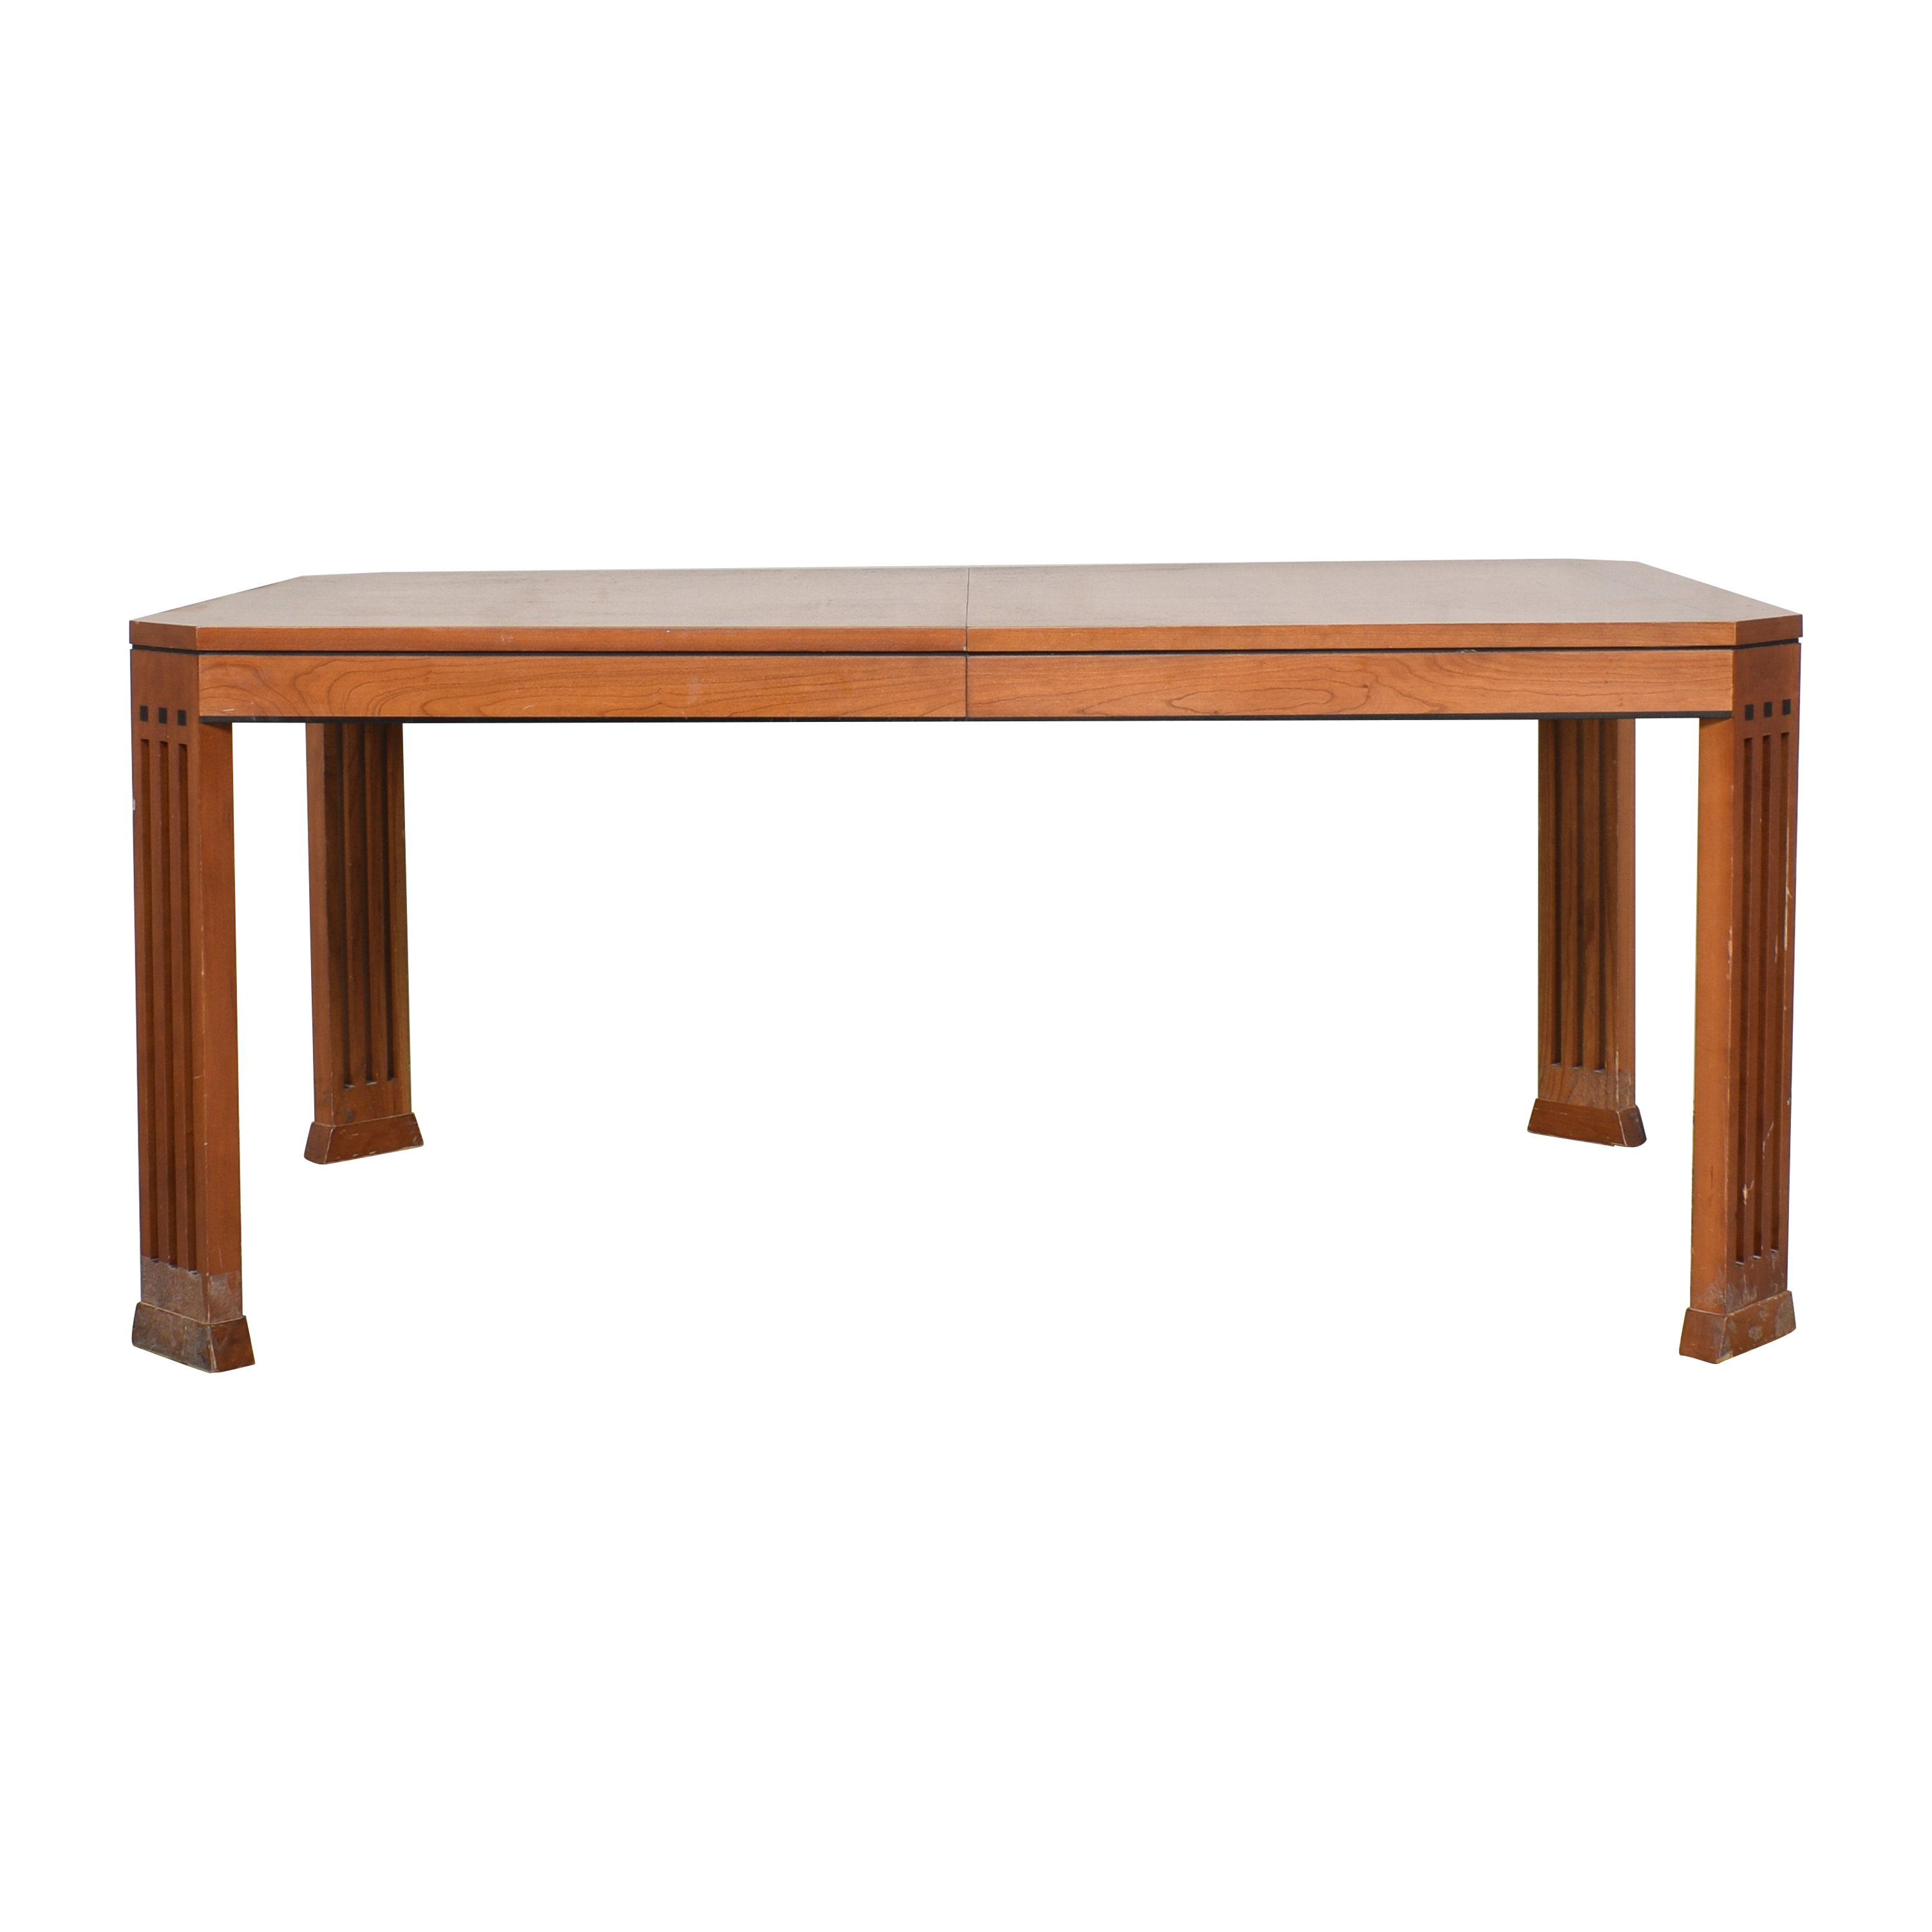 Stickley Furniture Stickley Furniture 21st Century Collection Dining Table ma